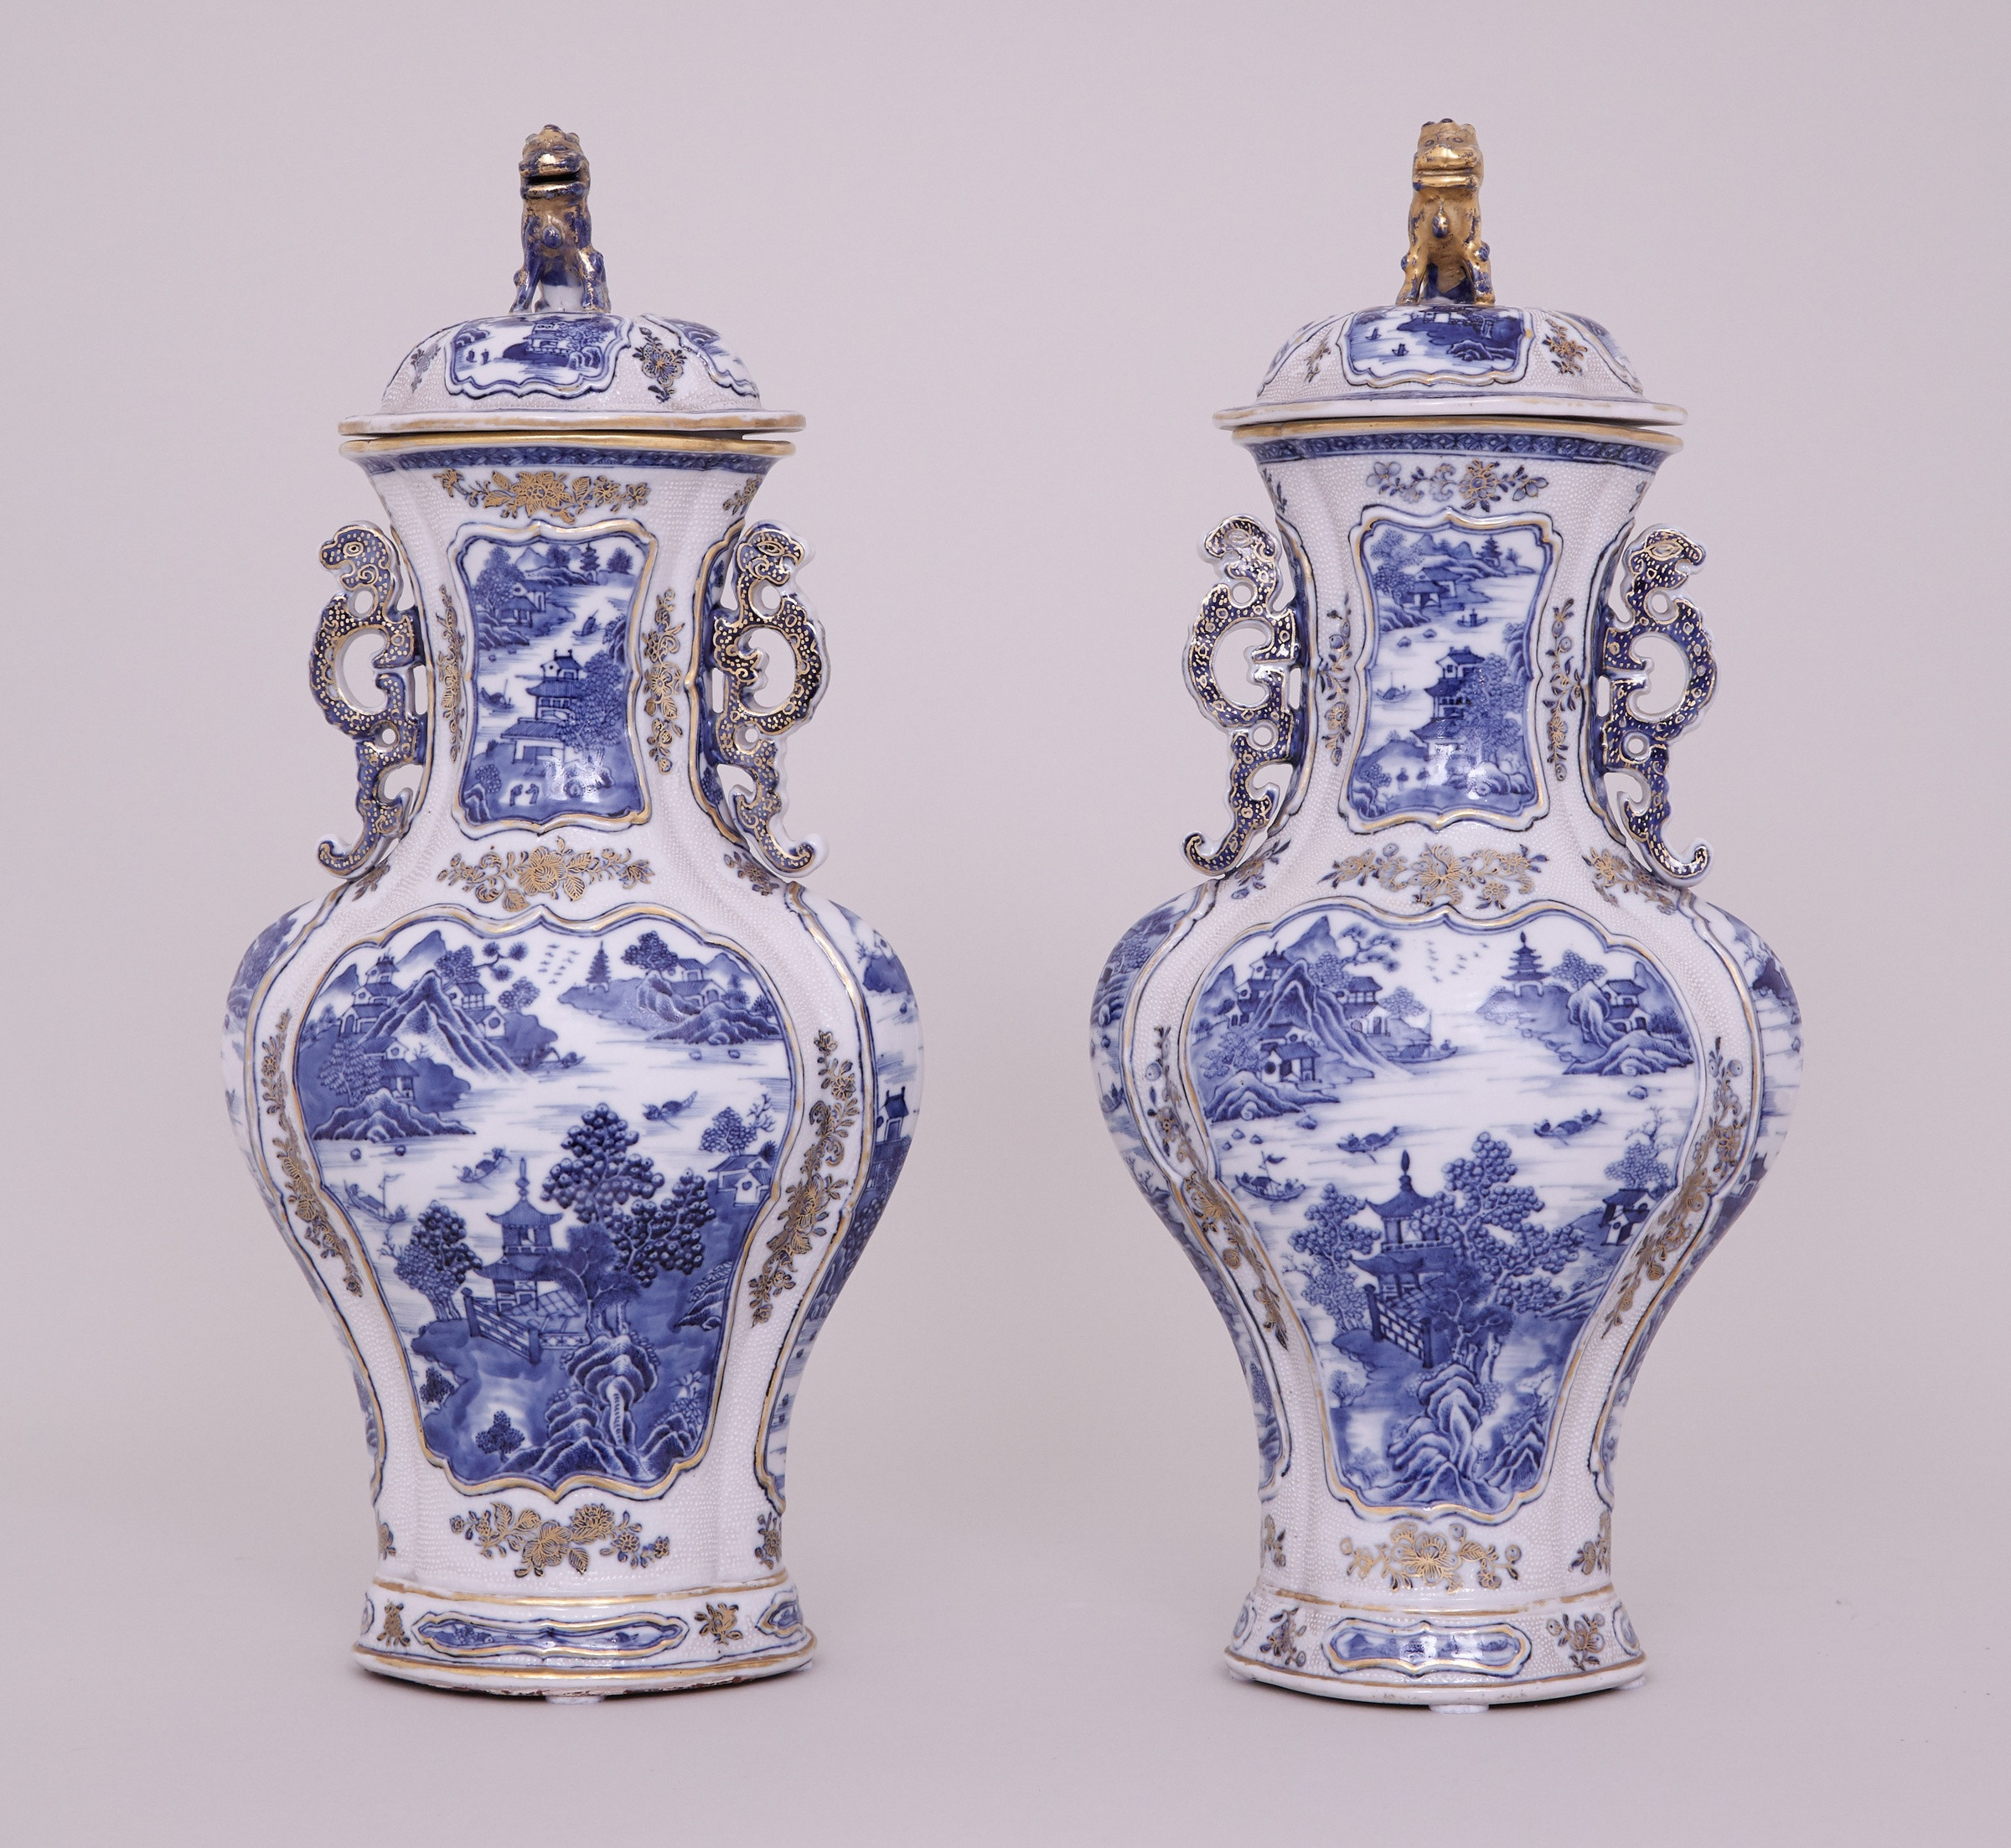 qianlong vase value of a pair of chinese blue and white nankin vases and covers qianlong within a pair of chinese blue and white nankin vases and covers